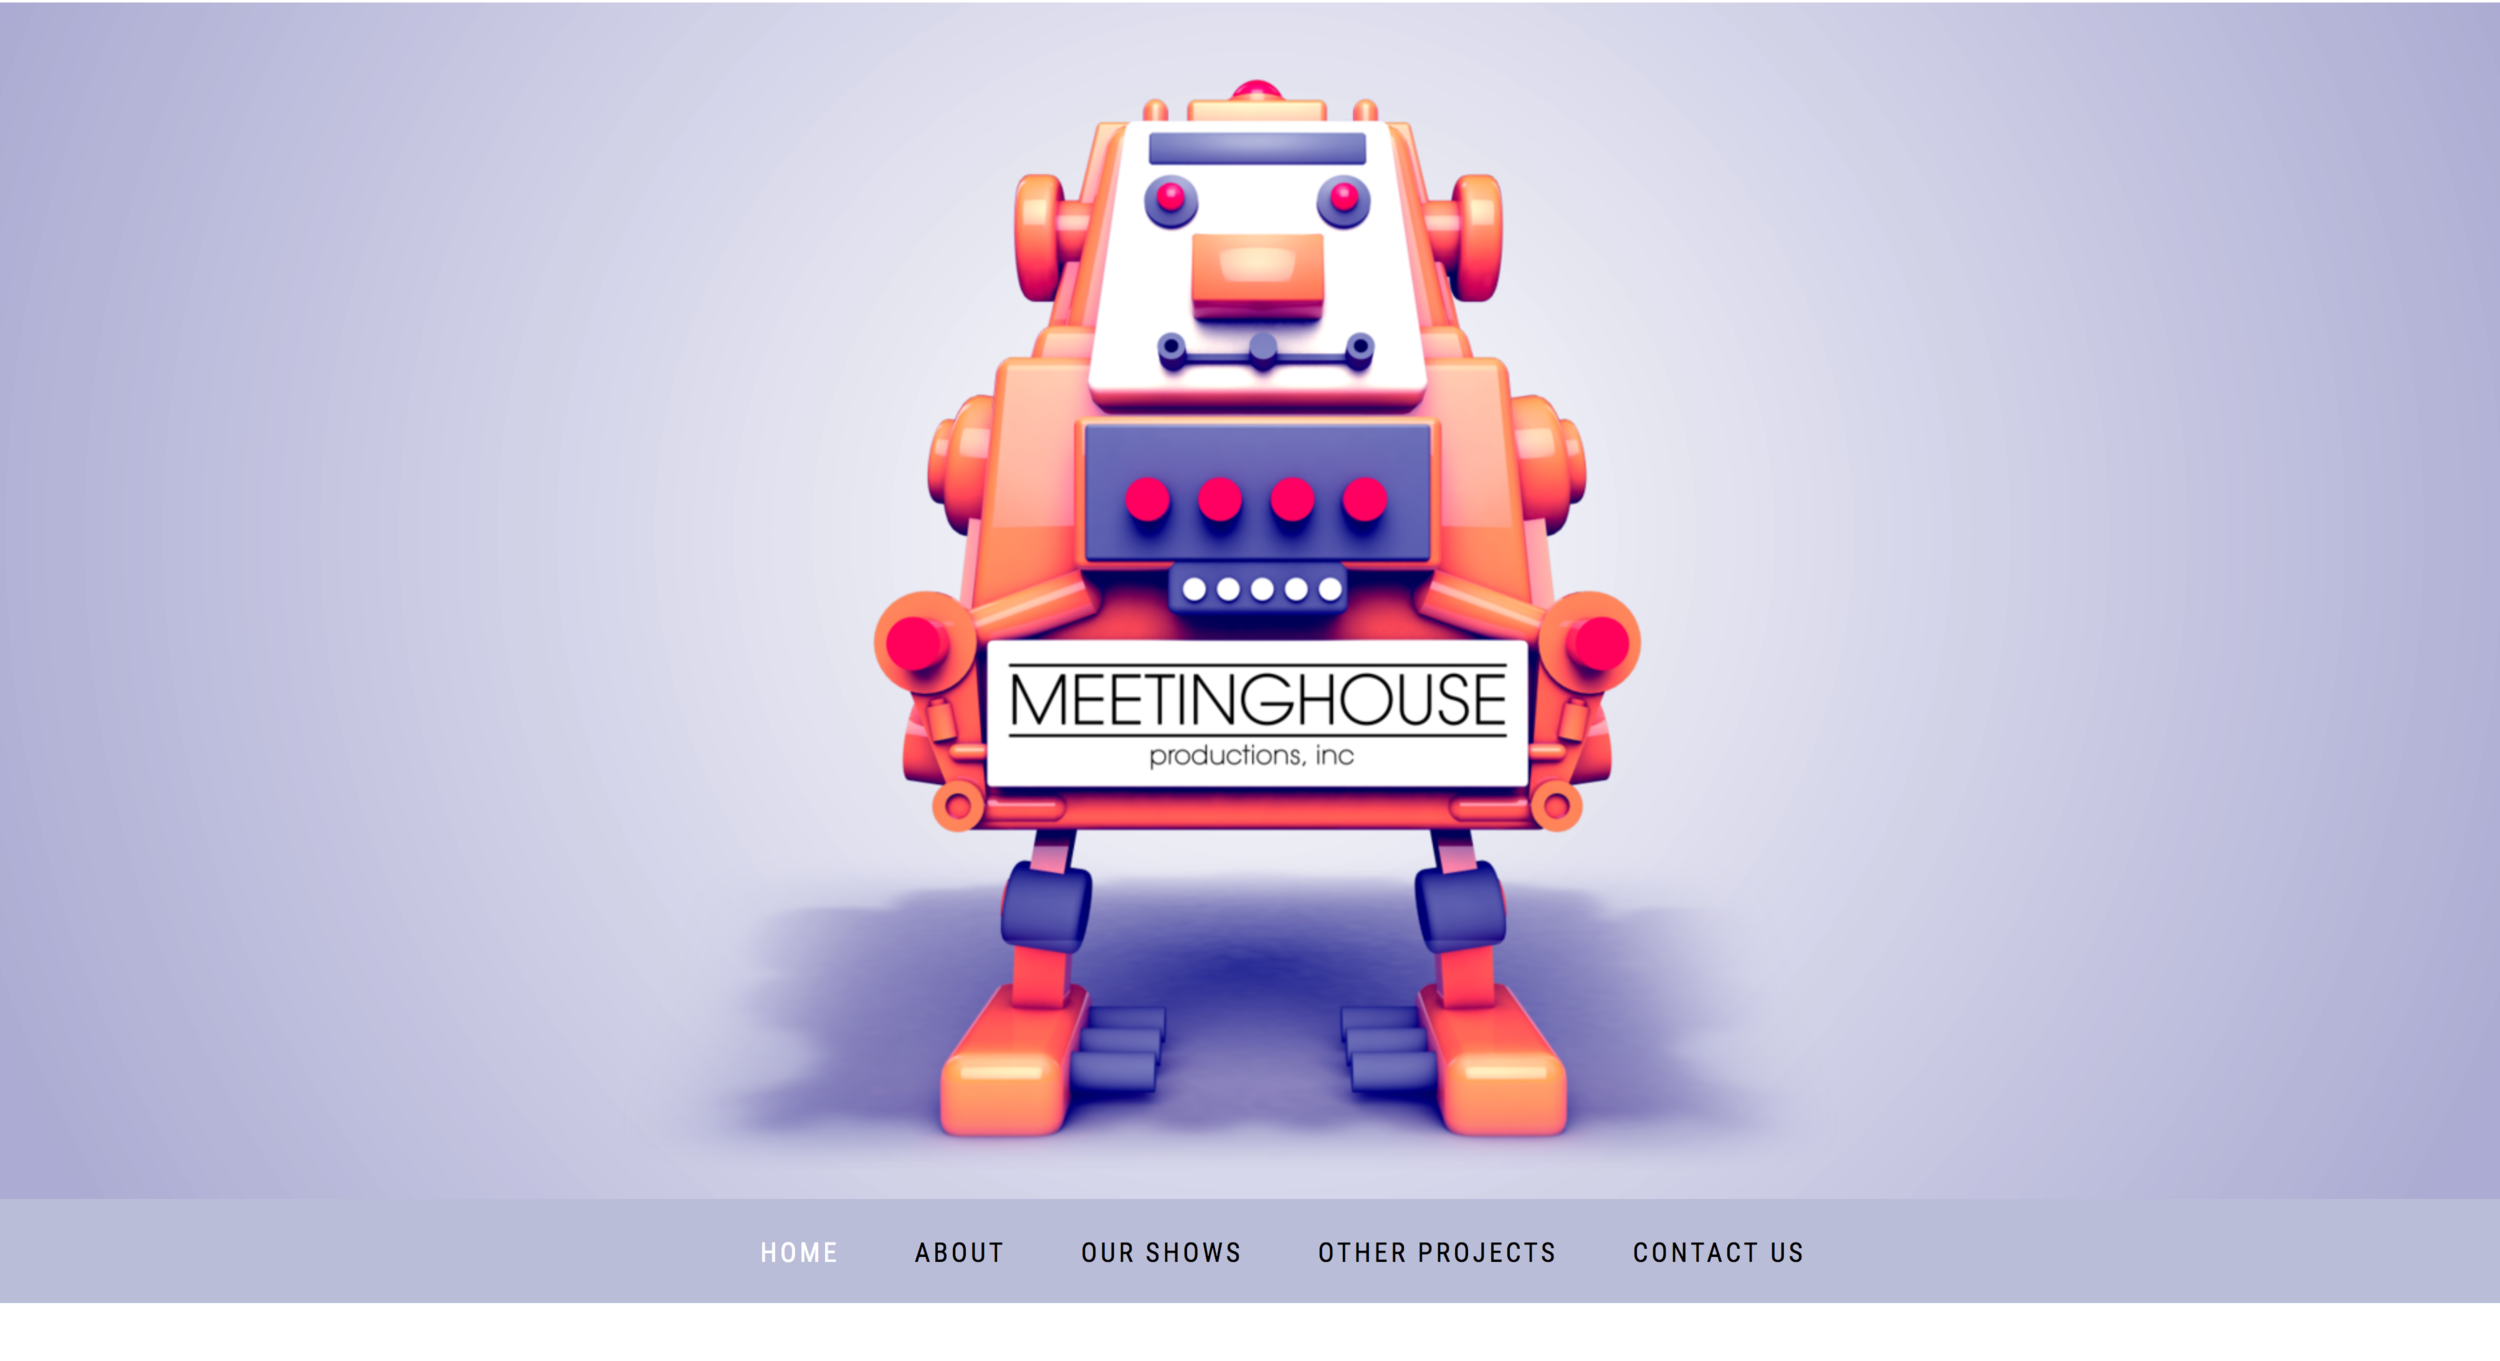 meetinghouse productions - VIEW PROJECT